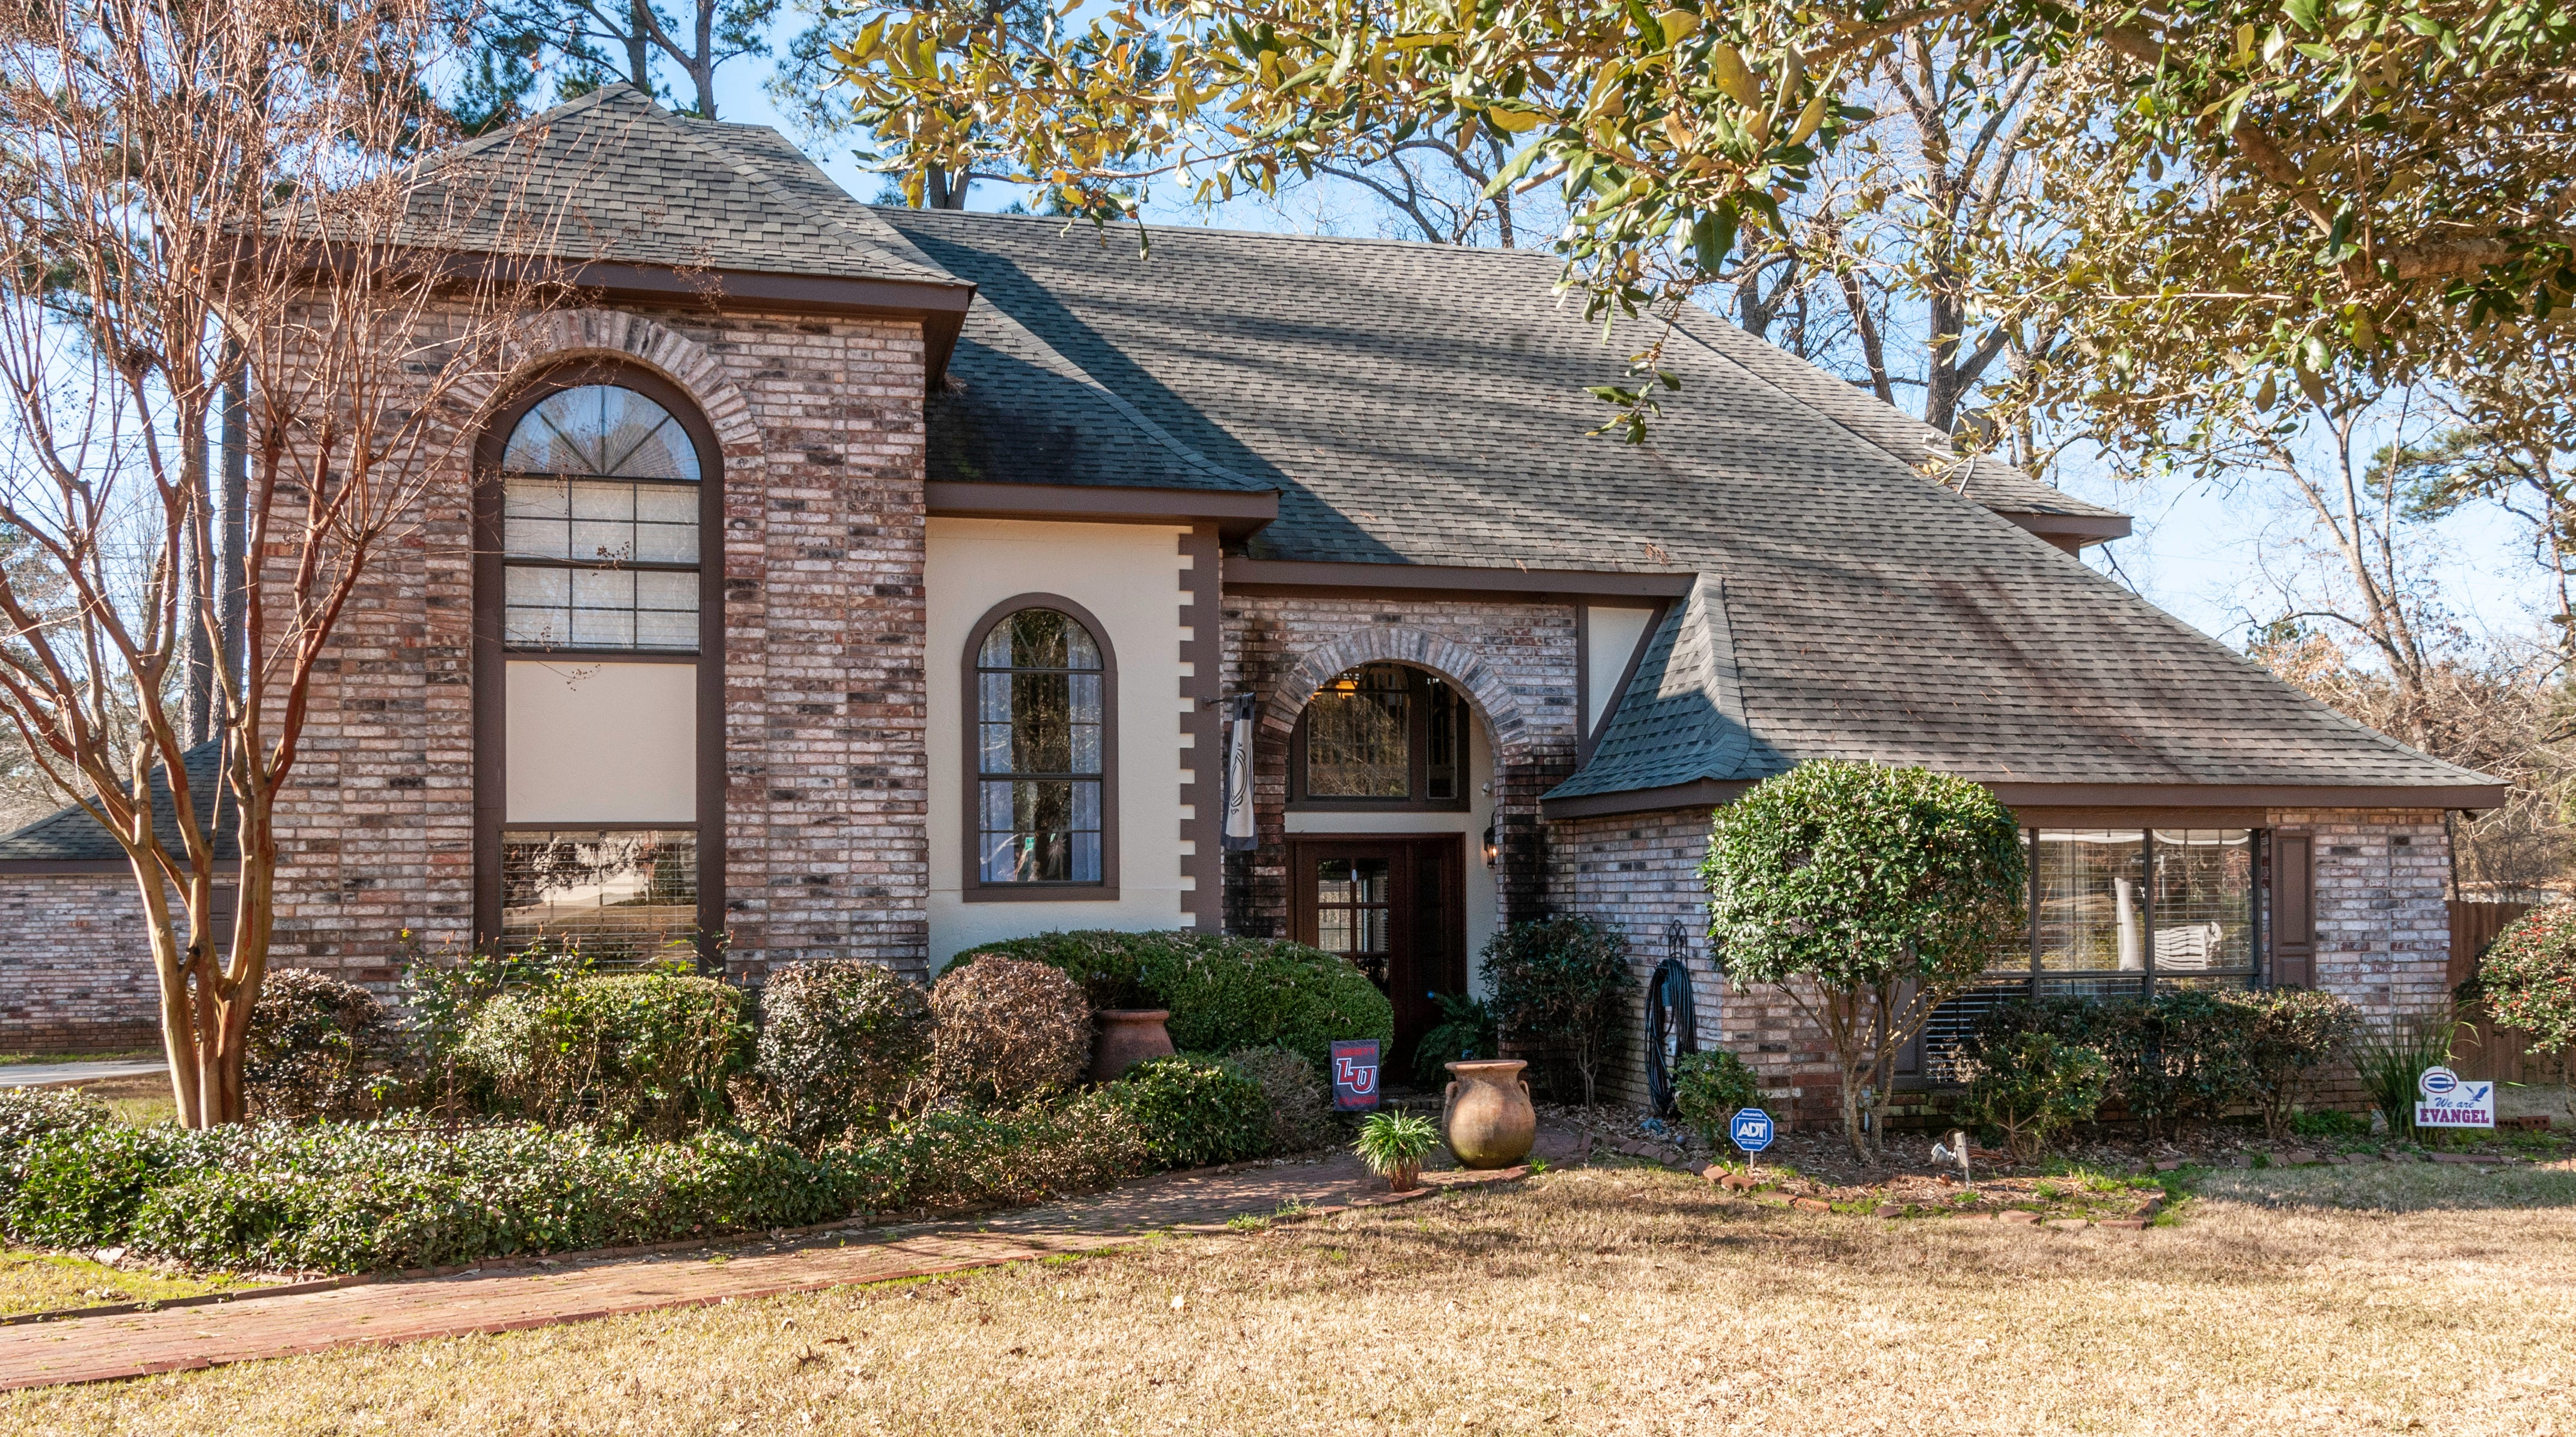 5741 Aragon Drive, Shreveport  Price: $338,000  Details: 5 bedrooms, 4 bathrooms, 3,080 square feet  Special features: New Castle home with a separate workshop, seller paying up to $5,000 in prepaid closing costs, outdoor living spaces, new pergola, man cave or flex room upstairs, remodeled kitchen and master bath.   Contact: Dondi Fielder, 780-9123